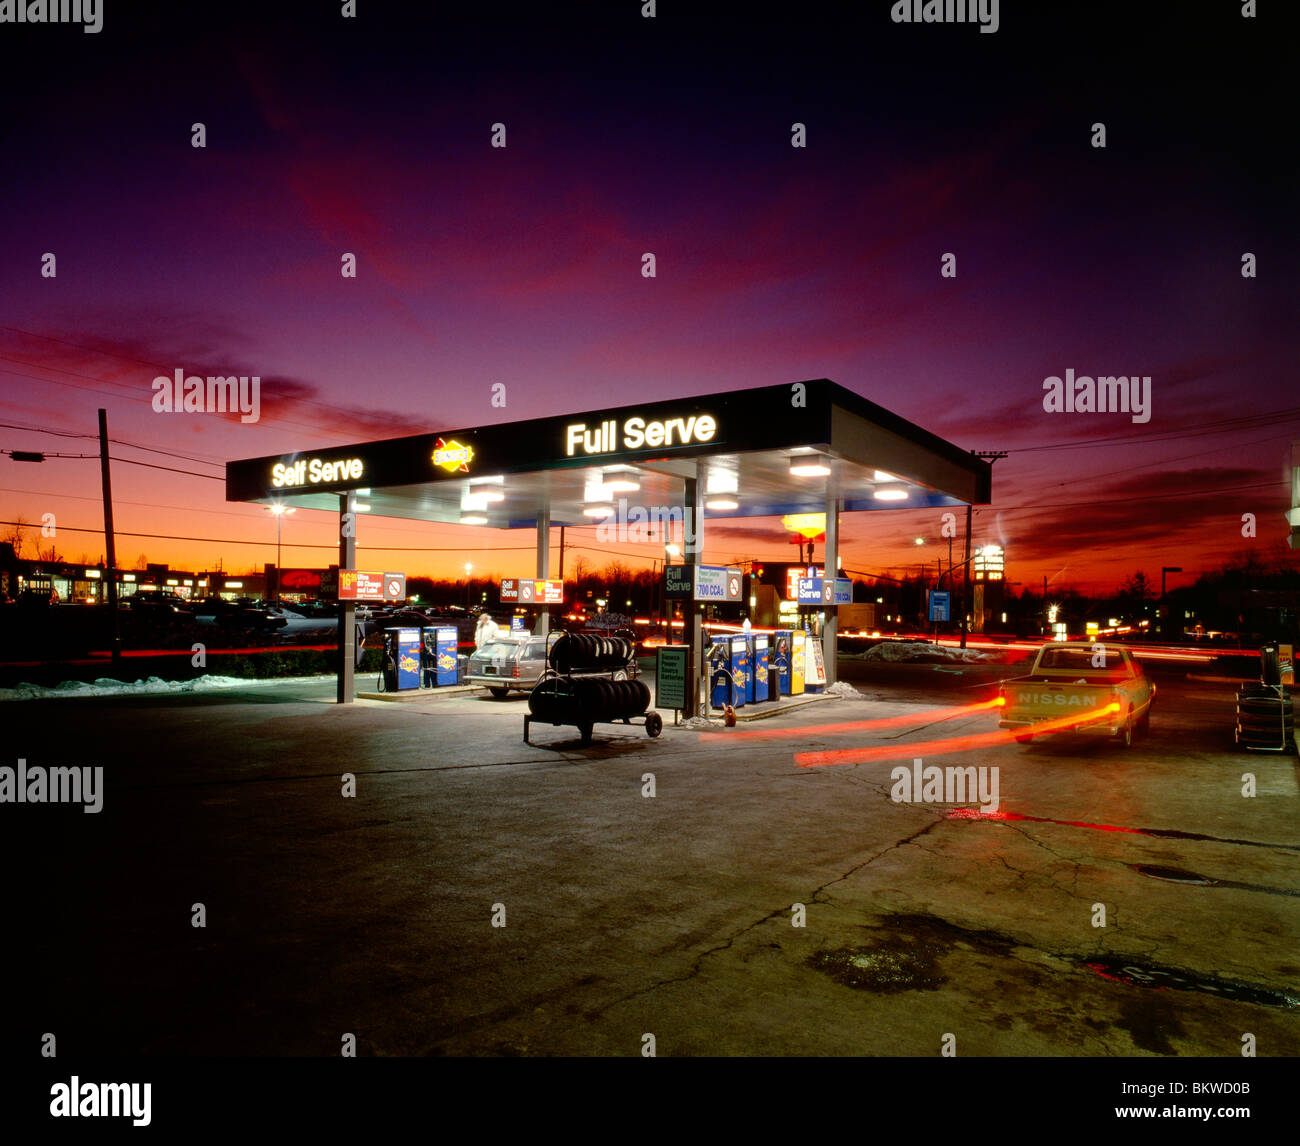 Dusk view of a gasoline station and convenience store; Maple Glen, Pennsylvania, USA Stock Photo